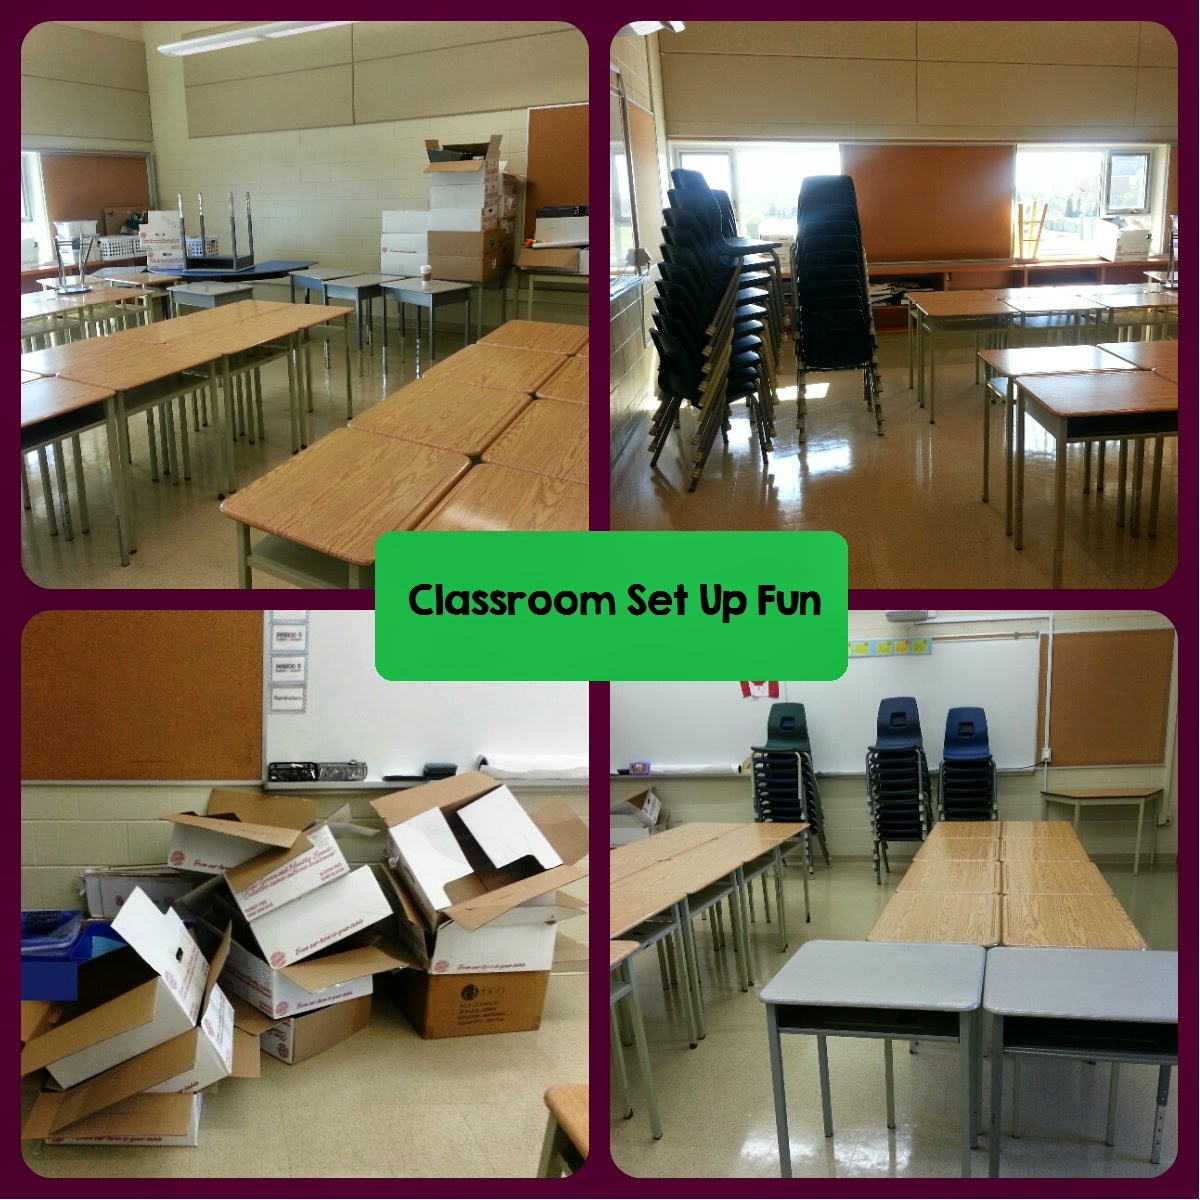 Classroom Design Middle School ~ How to set up a middle school classroom peas and dog